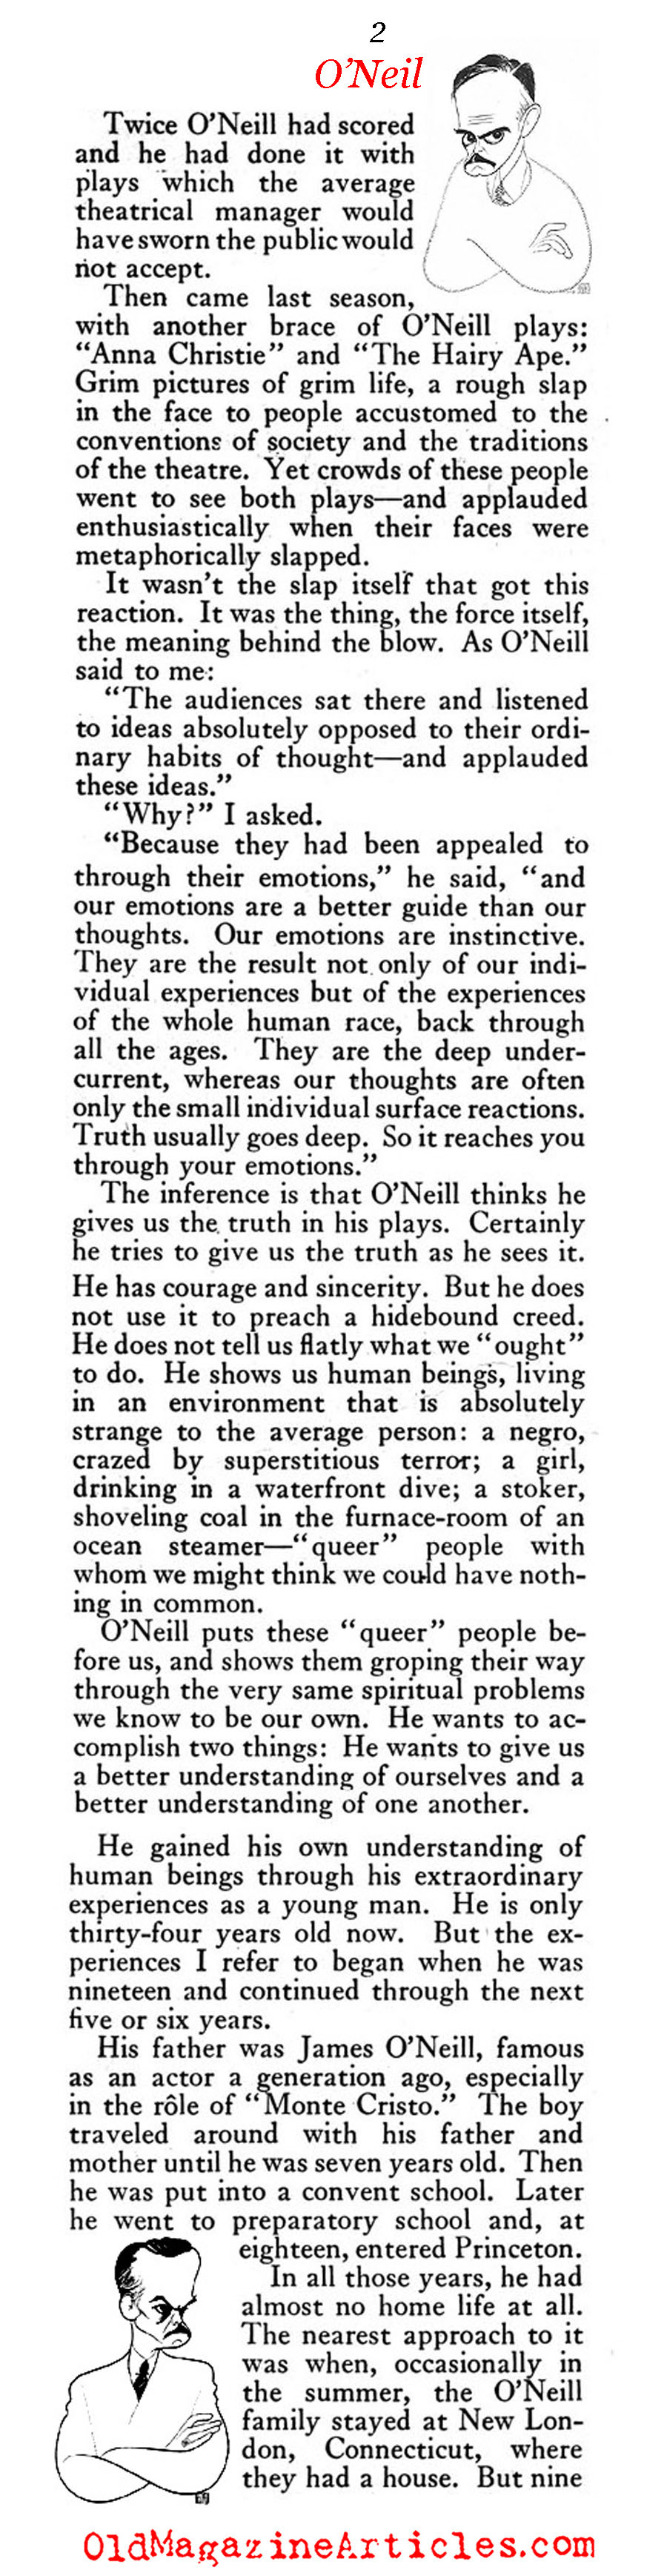 The Extraordinary Story of Eugene O'Neill (The American Magazine, 1922)